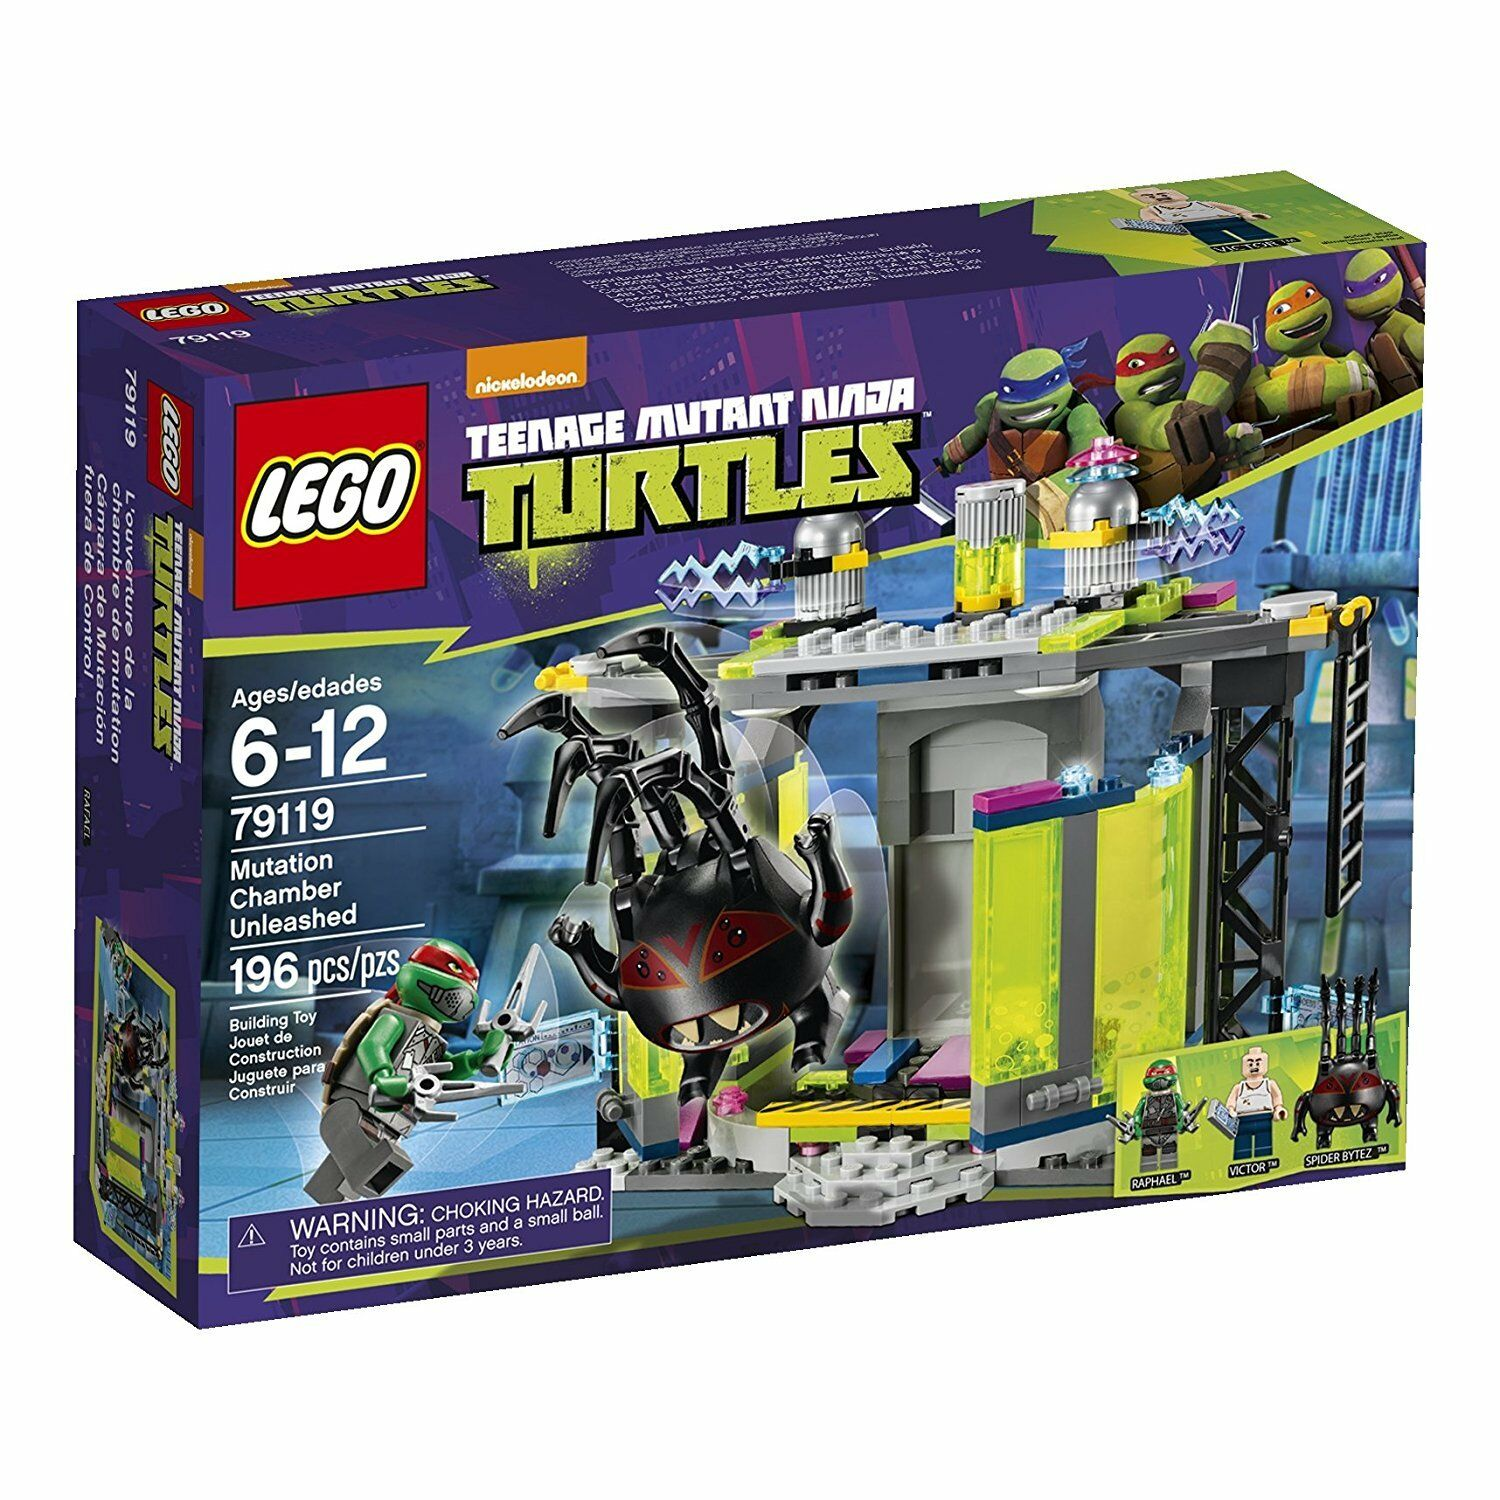 Sealed LEGO Mutation Chamber Unleashed TMNT Teenage Mutant Ninja Turtles 79119